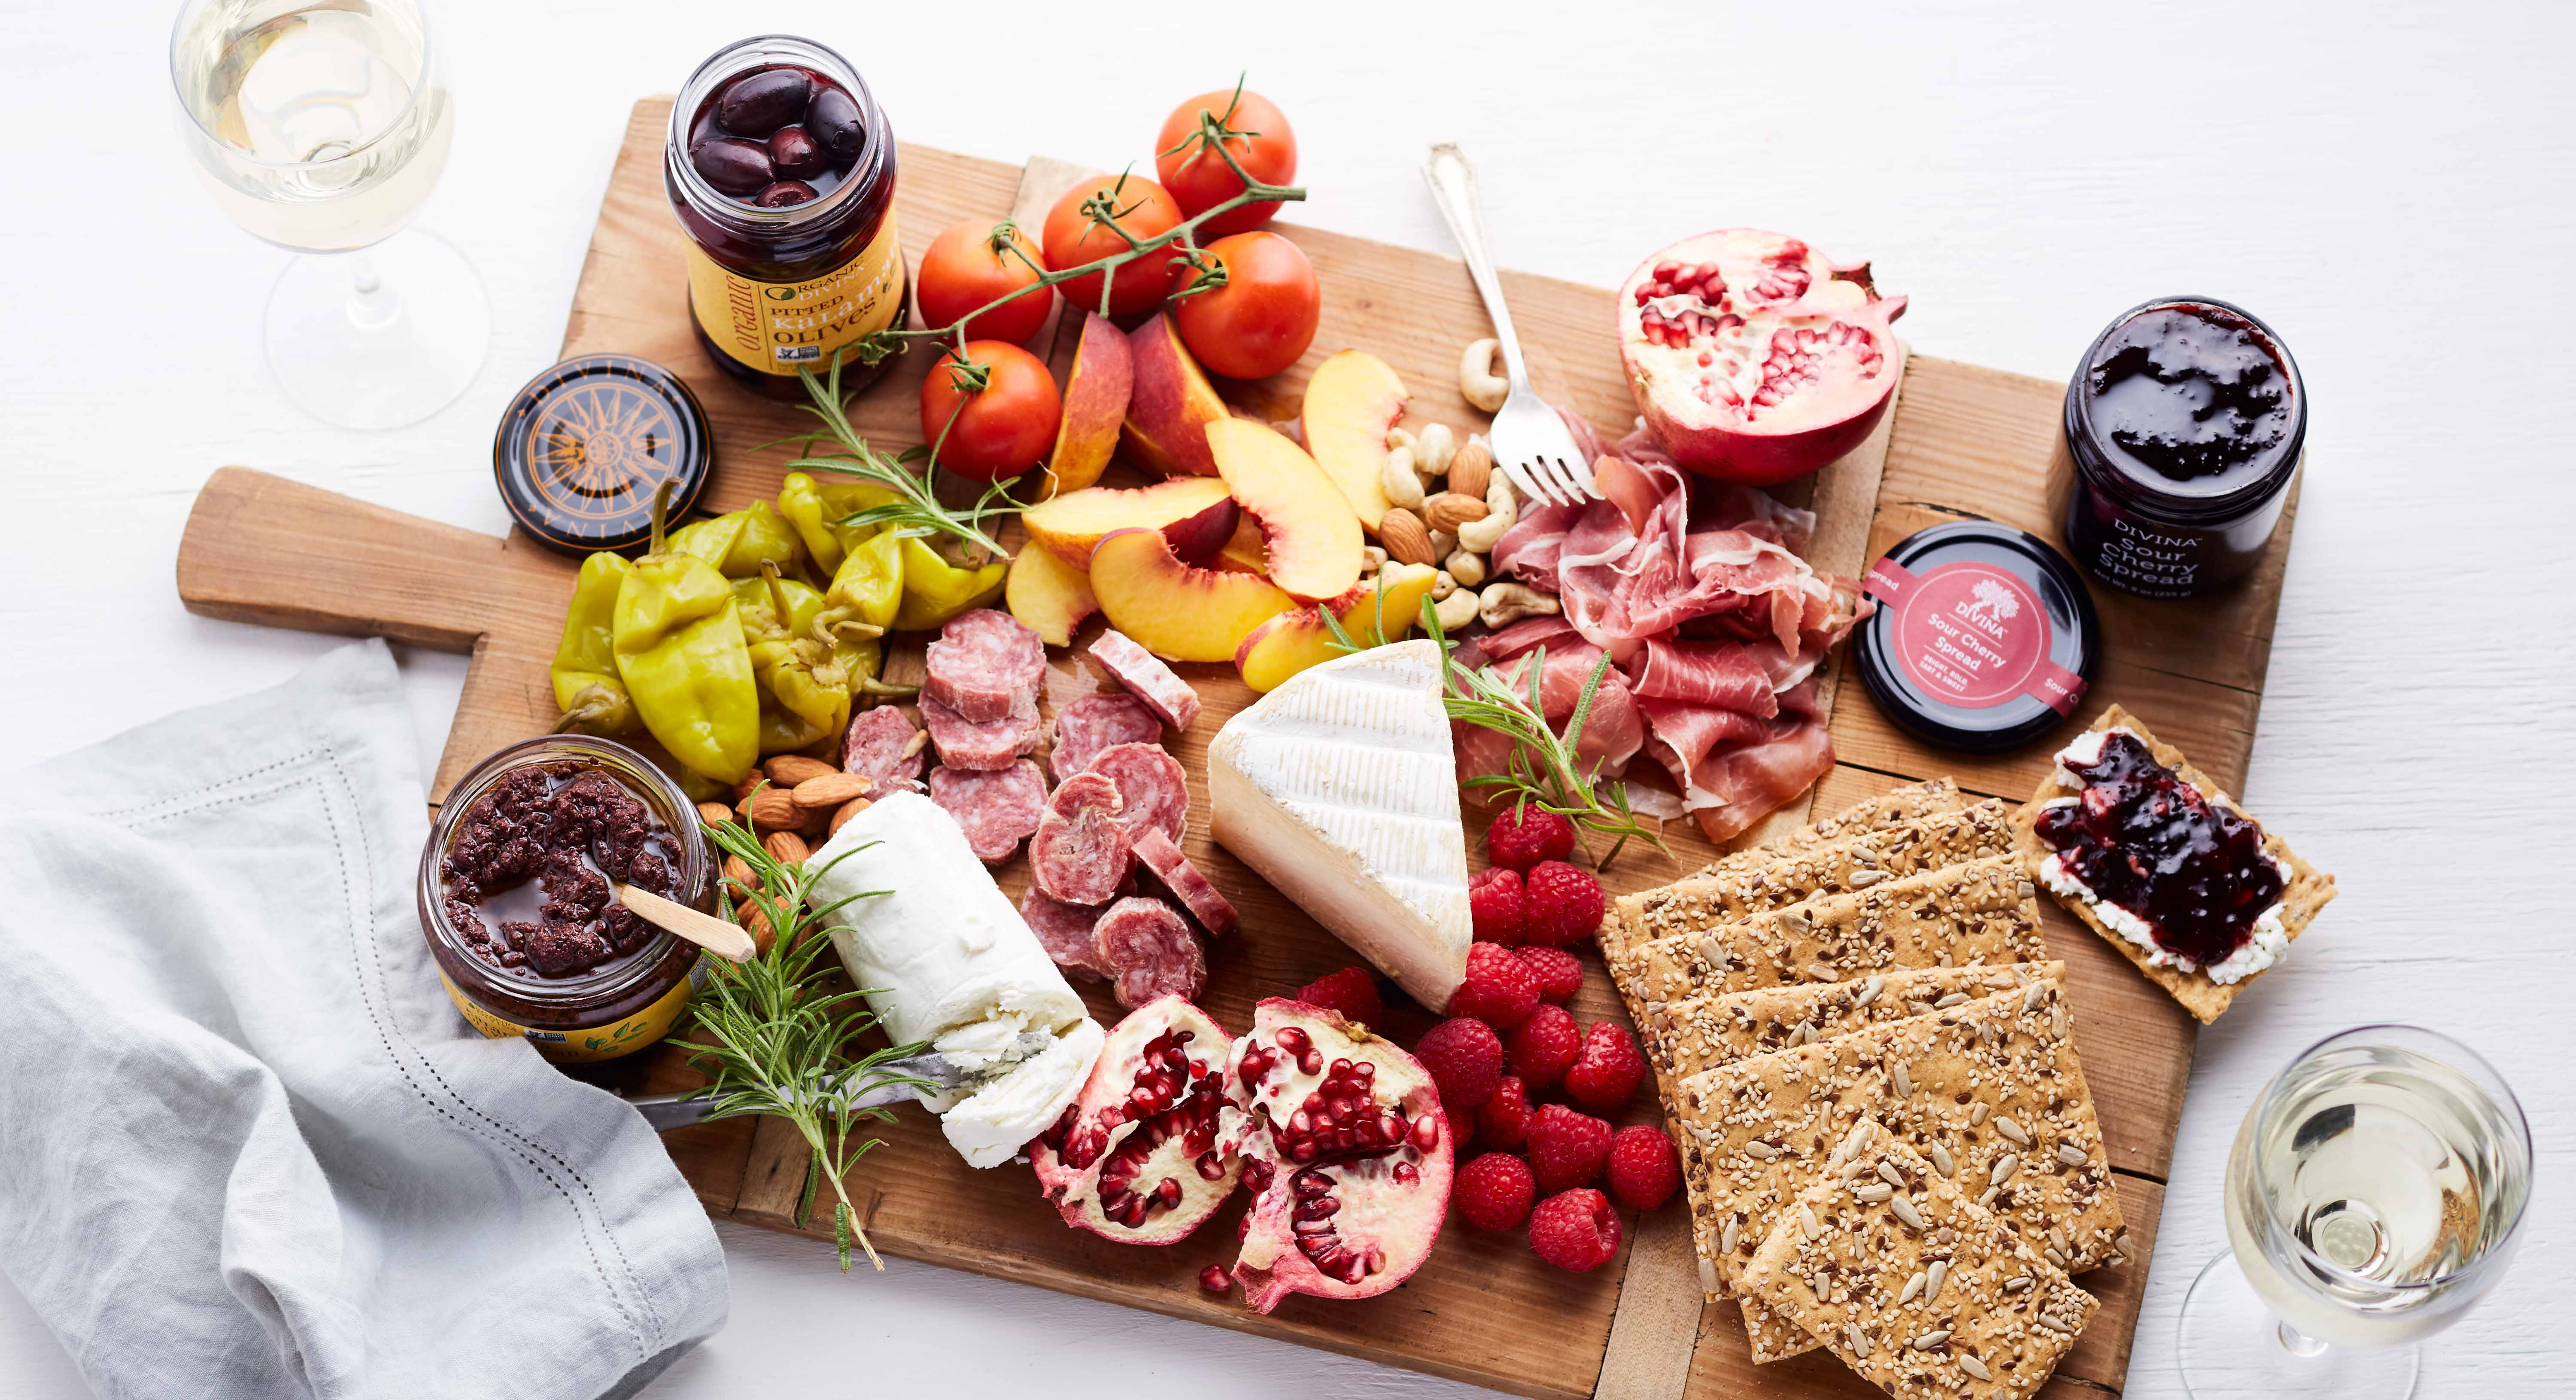 How To Build Your Ultimate Cheese And Charcuterie Board